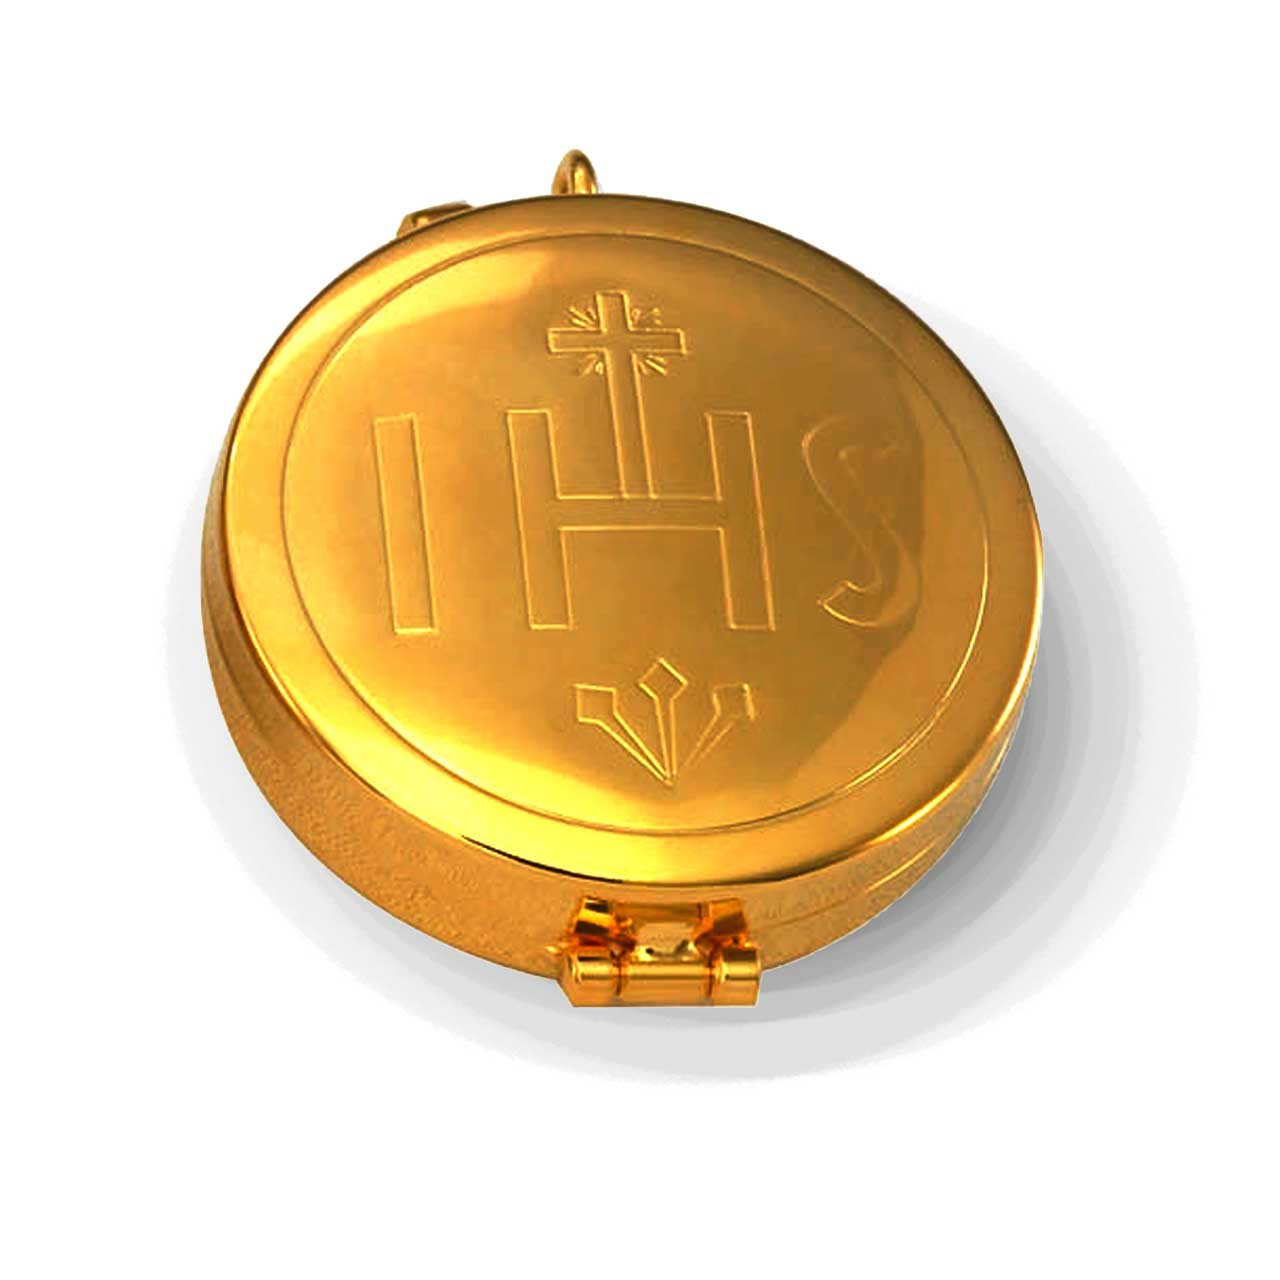 Gold Plated IHS Pyx